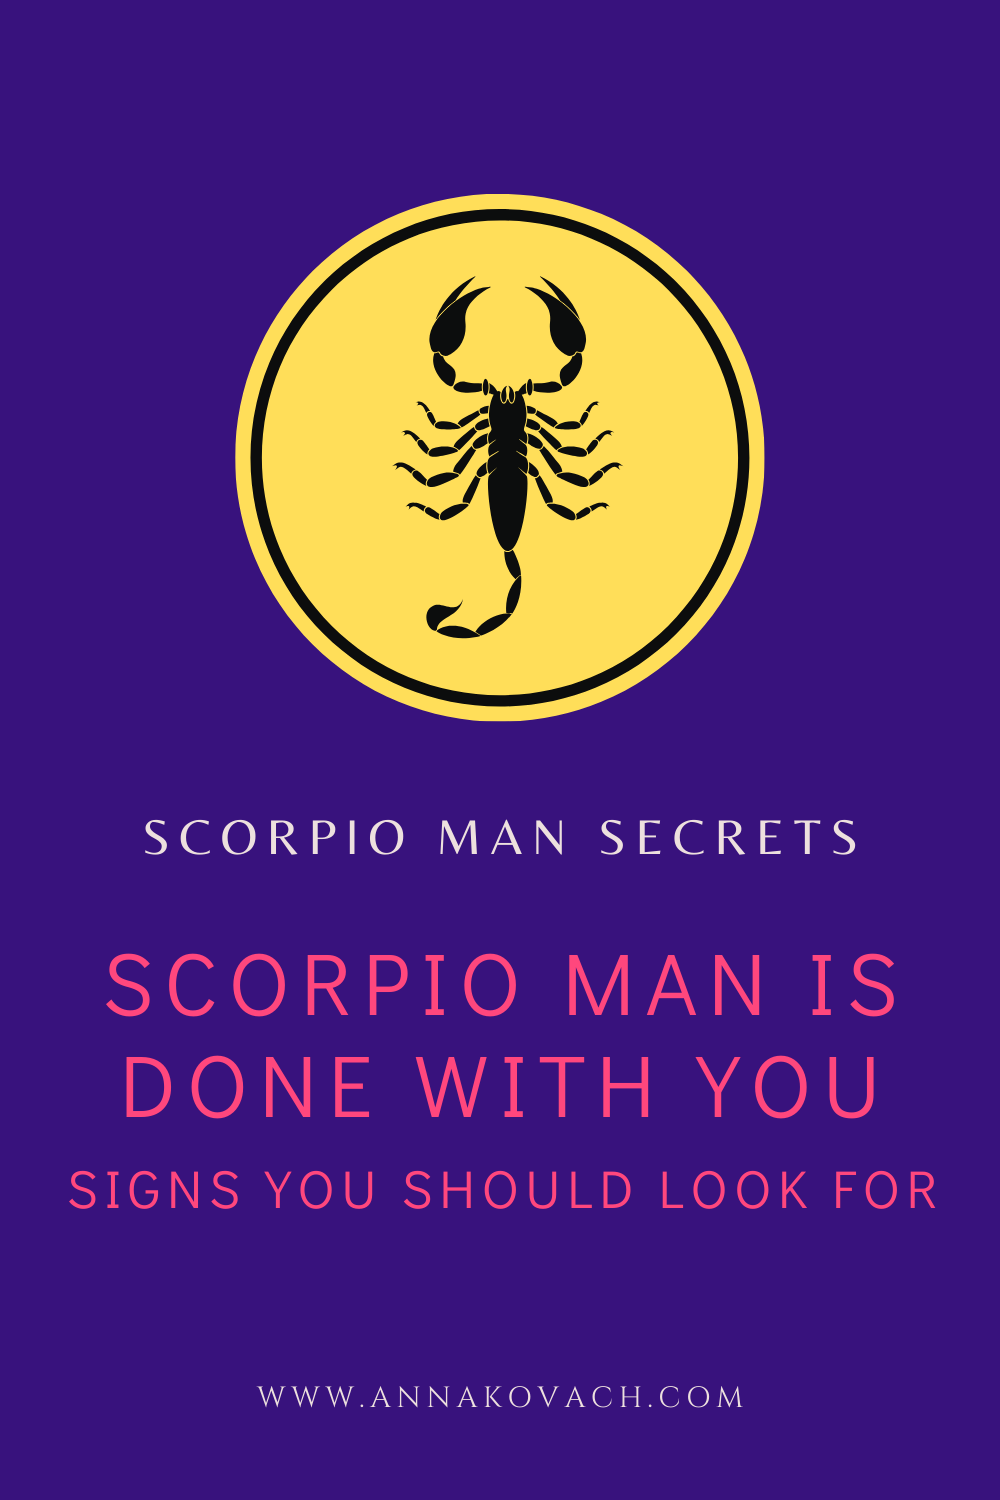 A man you scorpio will use What Kind